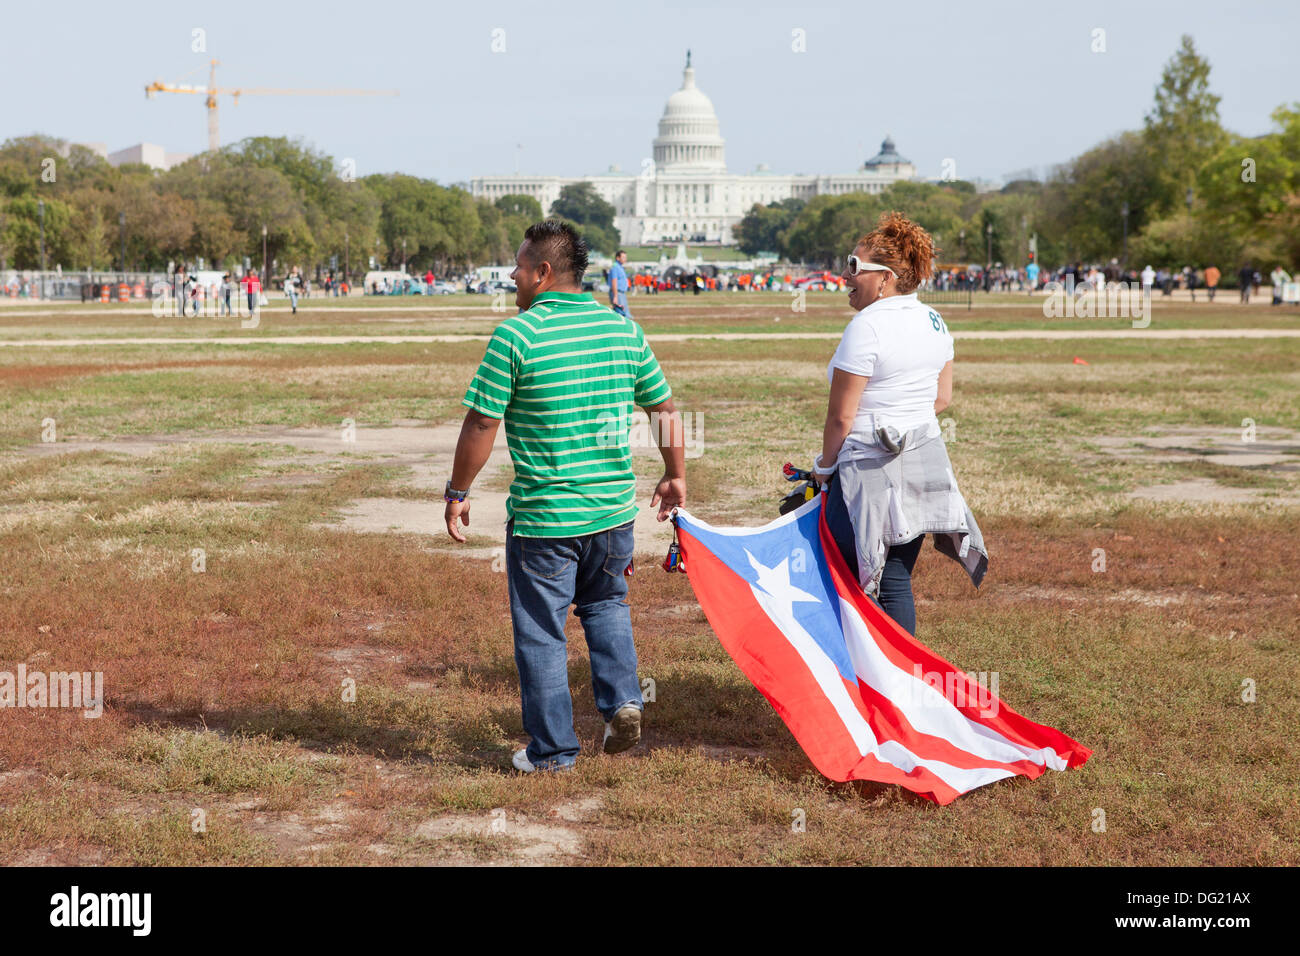 Couple walking with Puerto Rican flag at Immigration Reform rally - Washington, DC USA - Stock Image